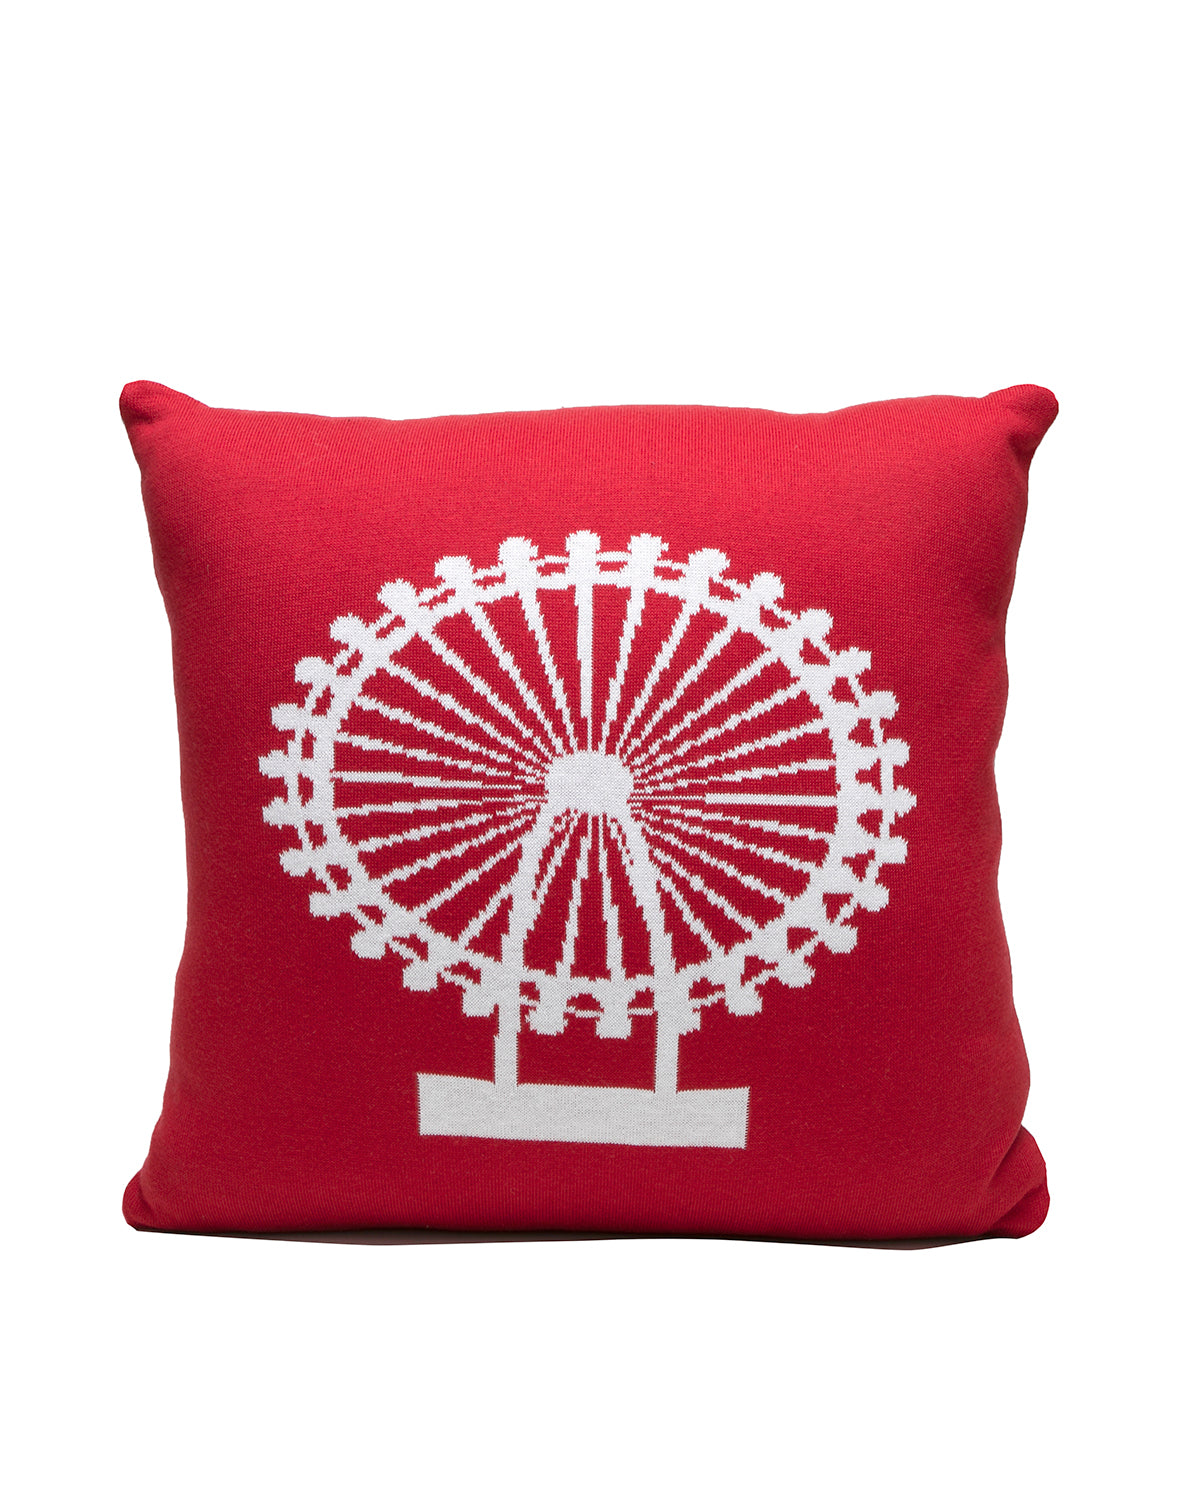 Rian TricotCushion LONDON EYE